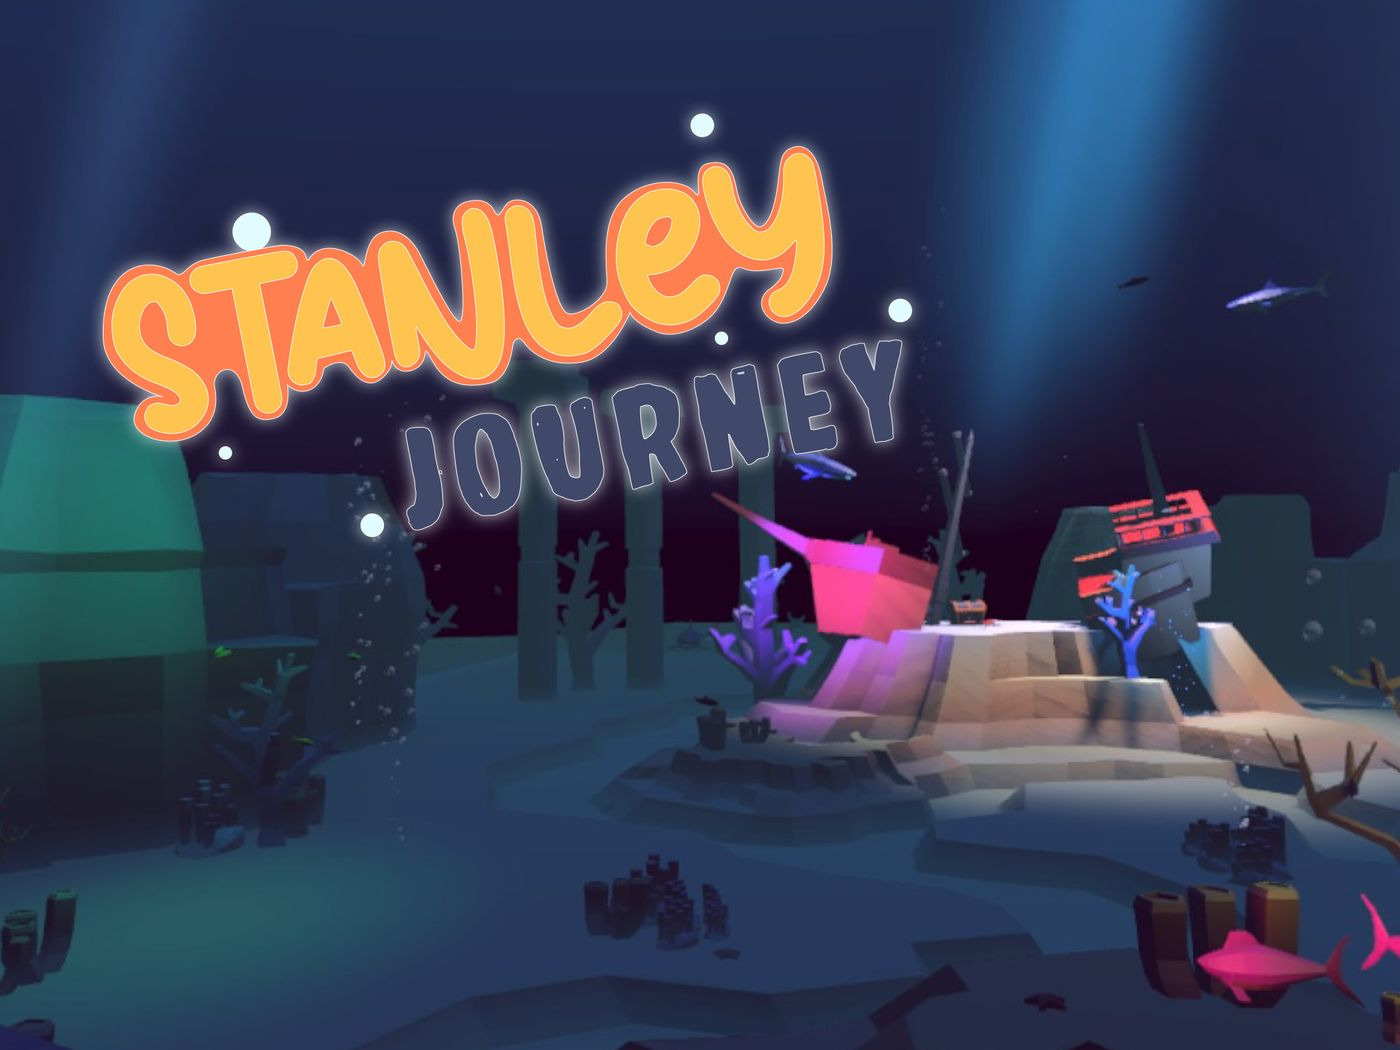 Stanely Journey